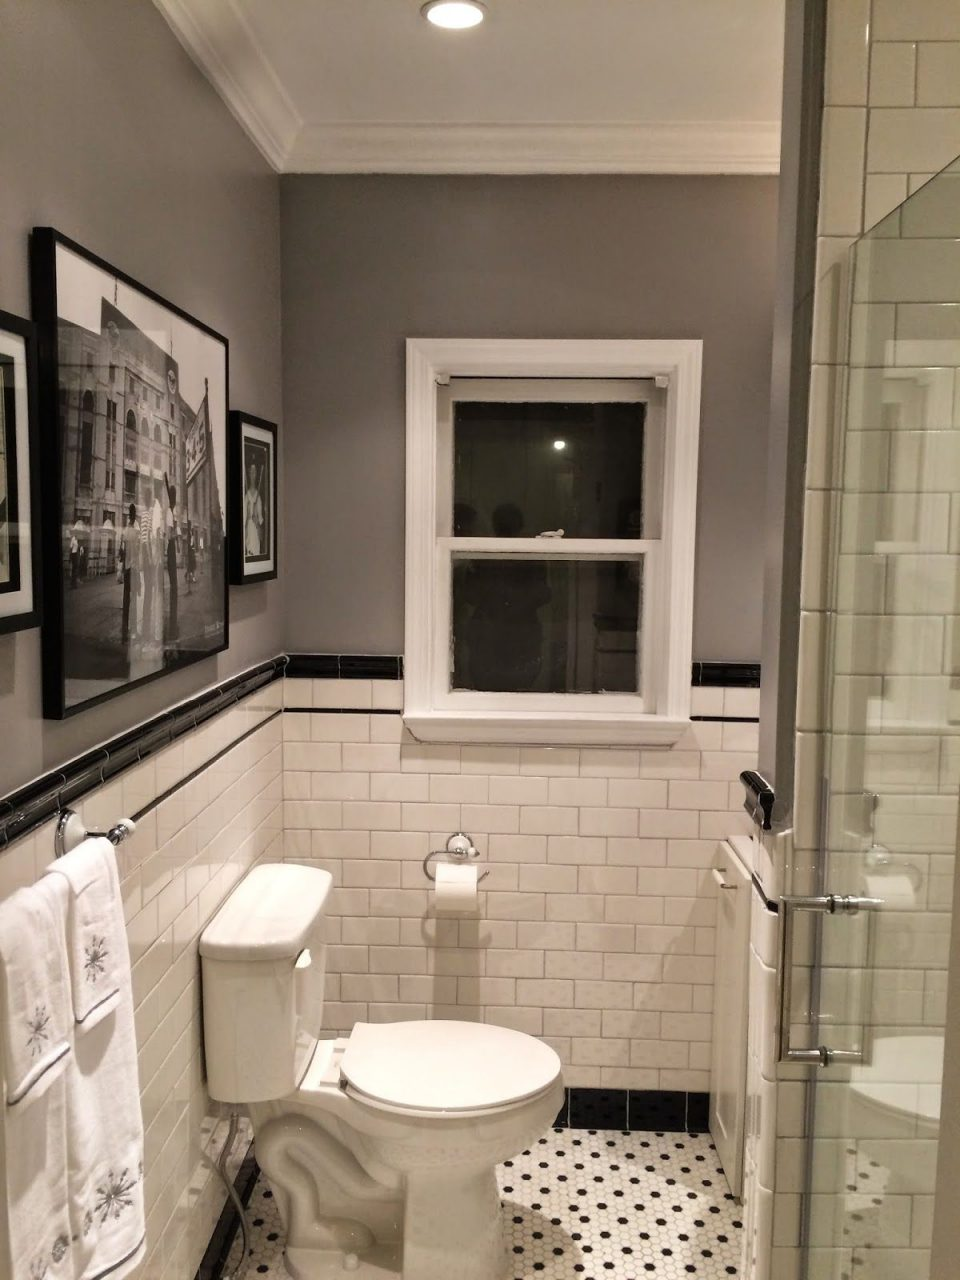 1920s Bathroom Remodel Subway Tile Penny Tile Floor Project